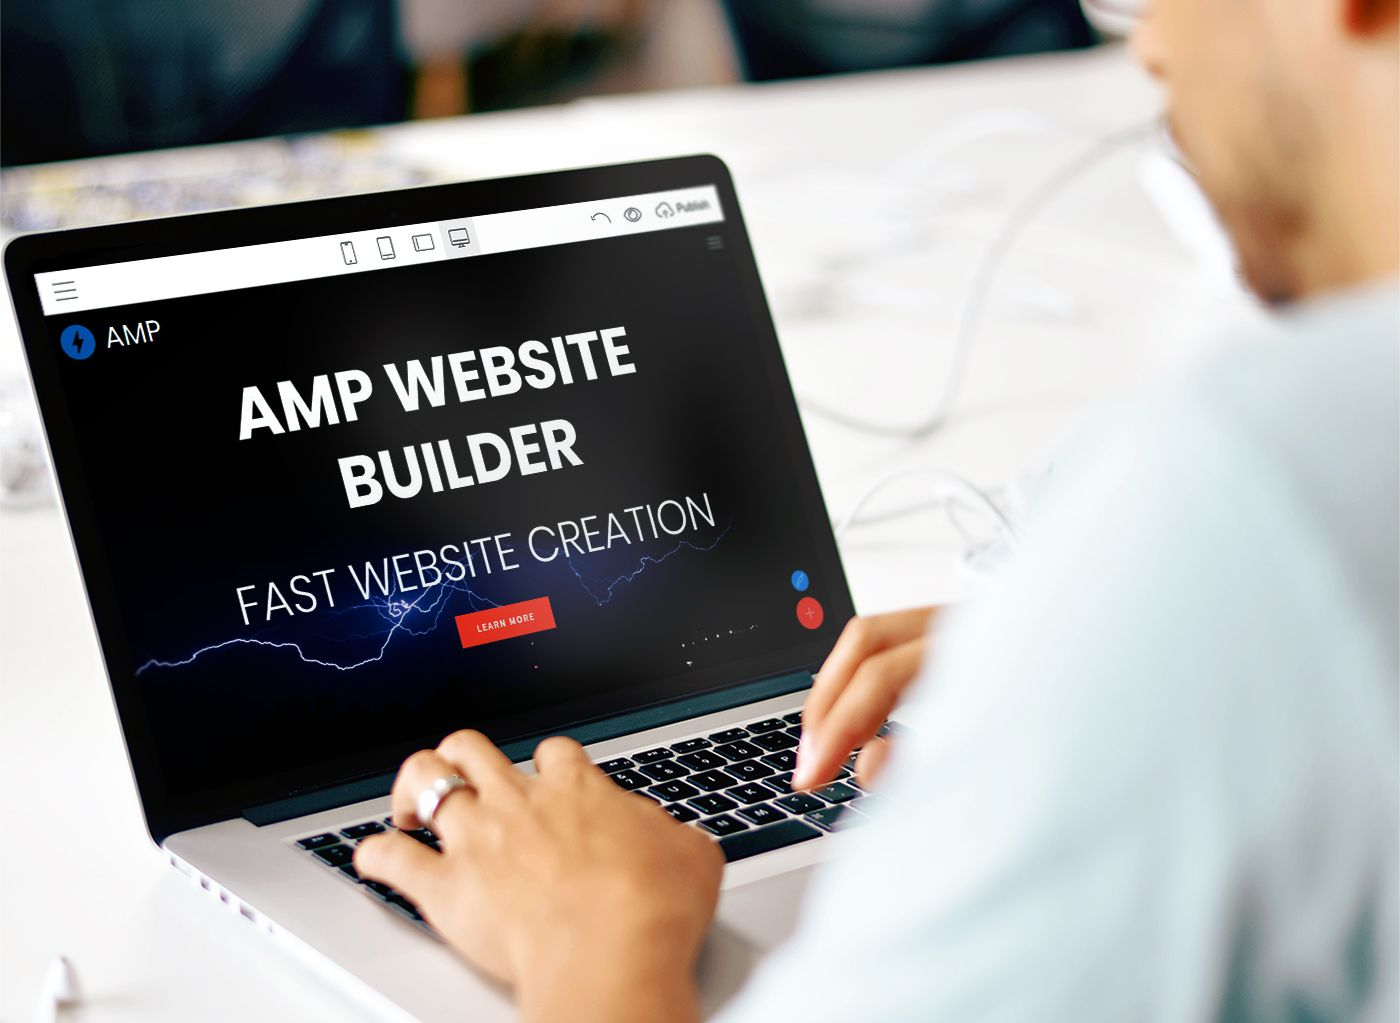 Mobirise v4.6 - AMP Website Builder!  Now it's possible to create Accelerated Mobile Pages (AMP) with Mobirise AMP Themes.  AMP is a set of rules with limitations that allows for building Google-friendly websites which load instantly on mobile devices.